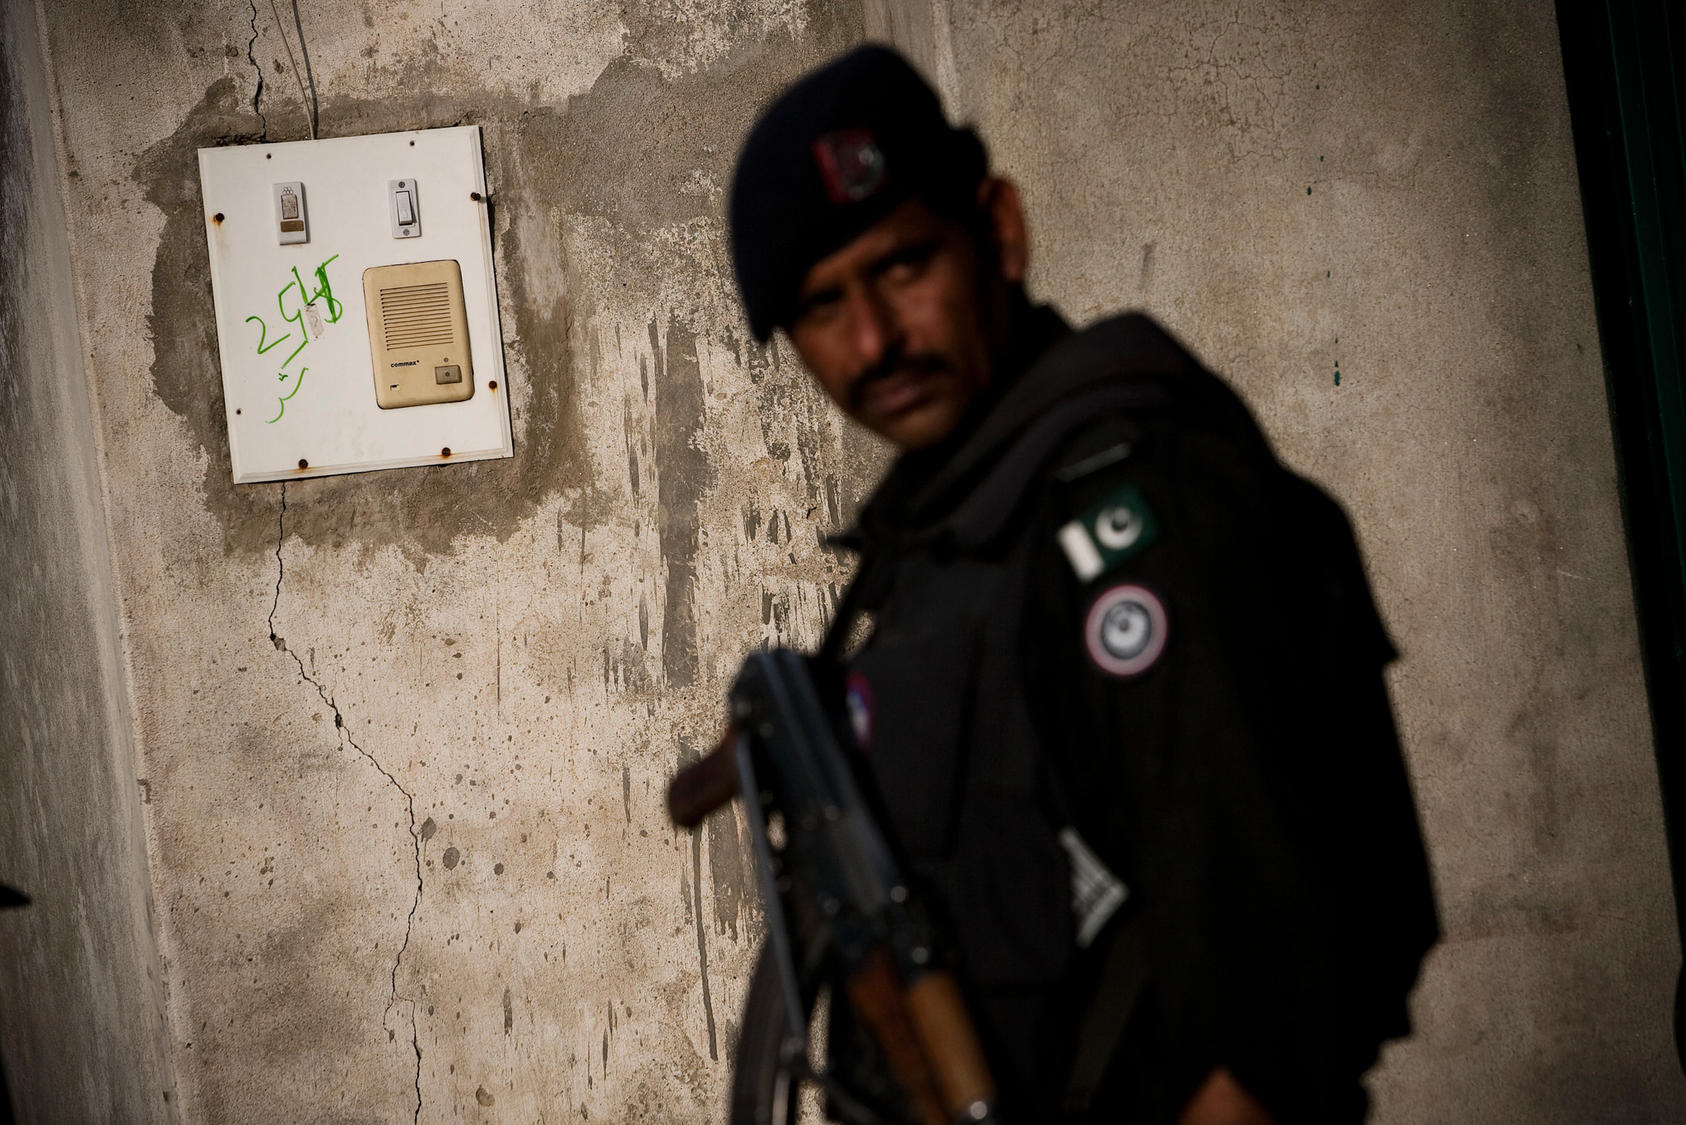 A Pakistani policeman stands next to the intercom at the entrance to the compound where Osama Bin Laden was killed in Abbottabad, Pakistan.